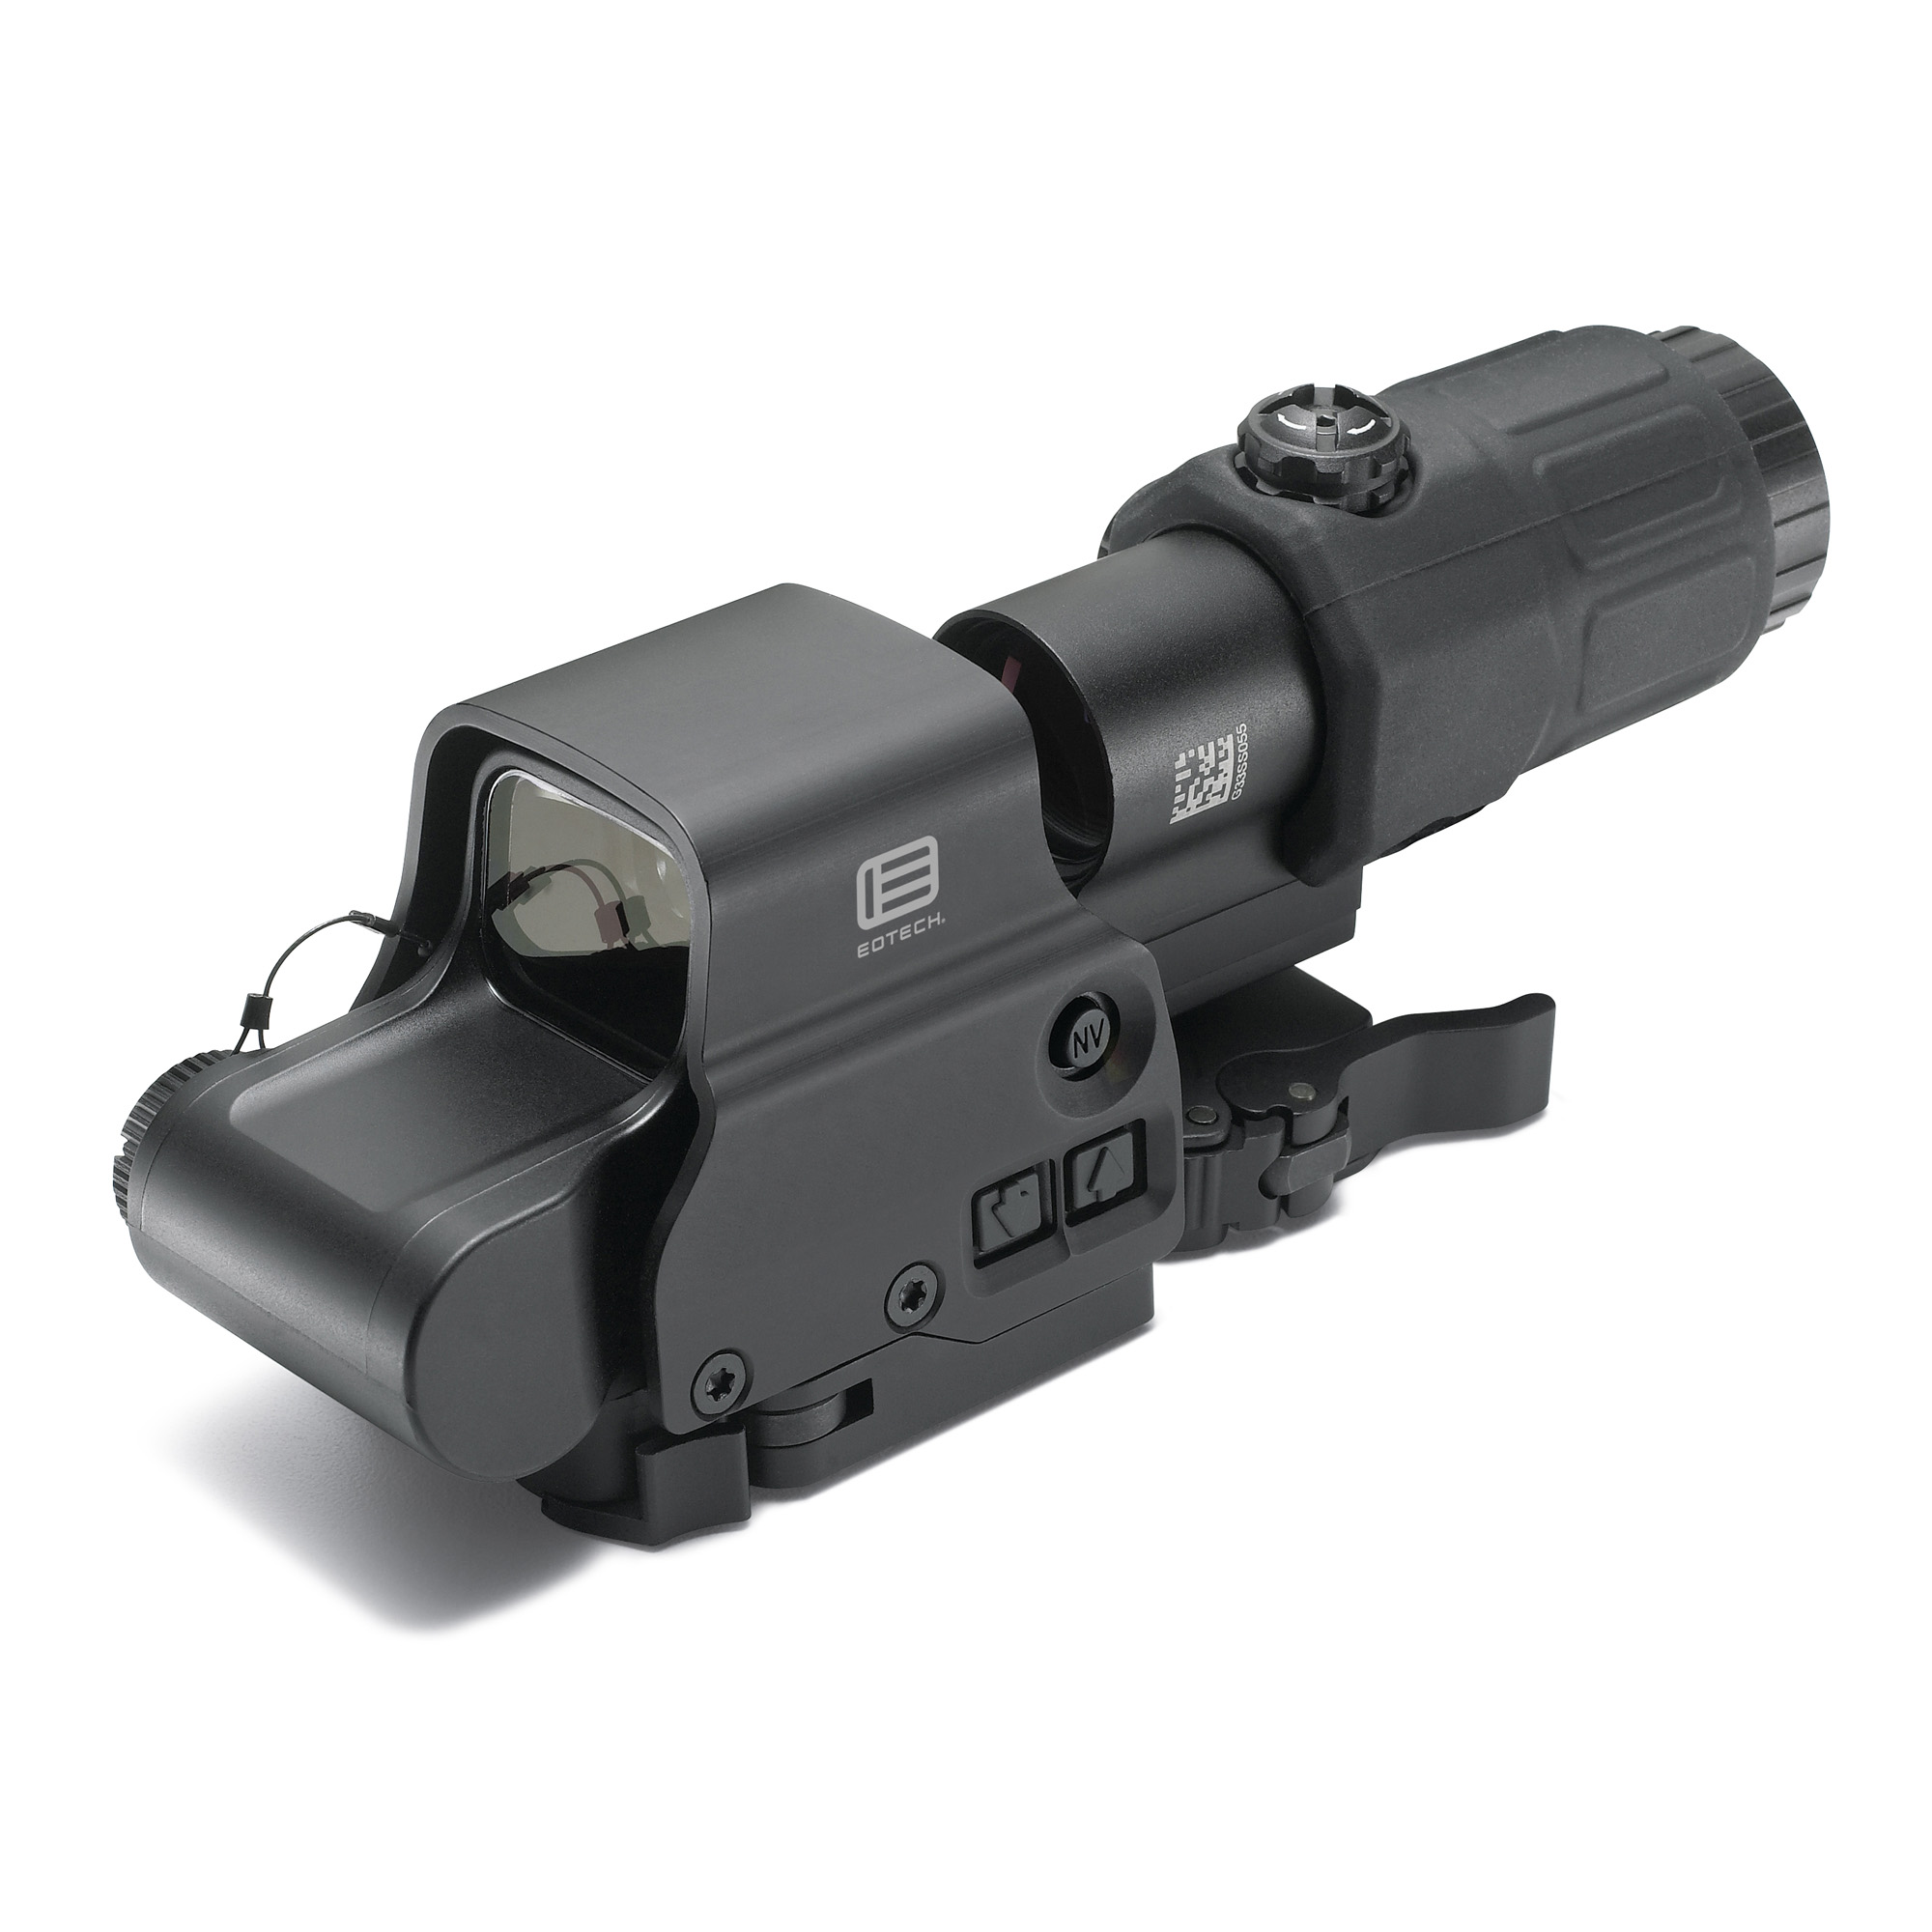 "The Holographic Hybrid Sight I (HHS I) features an EXPS3-4 with a G33.STS magnifier. It has great utility for any shooter"" whose target ranges vary from close to mid-range. The HHS I provides a solution for engaging threats in close-quarter combat situations"" then quickly transitions to a 600-meter targeting or surveillance situation. A quick switch-to-side (STS) mount offers simple"" fast disengagement of the G33 magnifier. The durable"" night-vision-compatible system offers wide-field optical performance with superior light transmission for visibility in extreme low-light conditions."